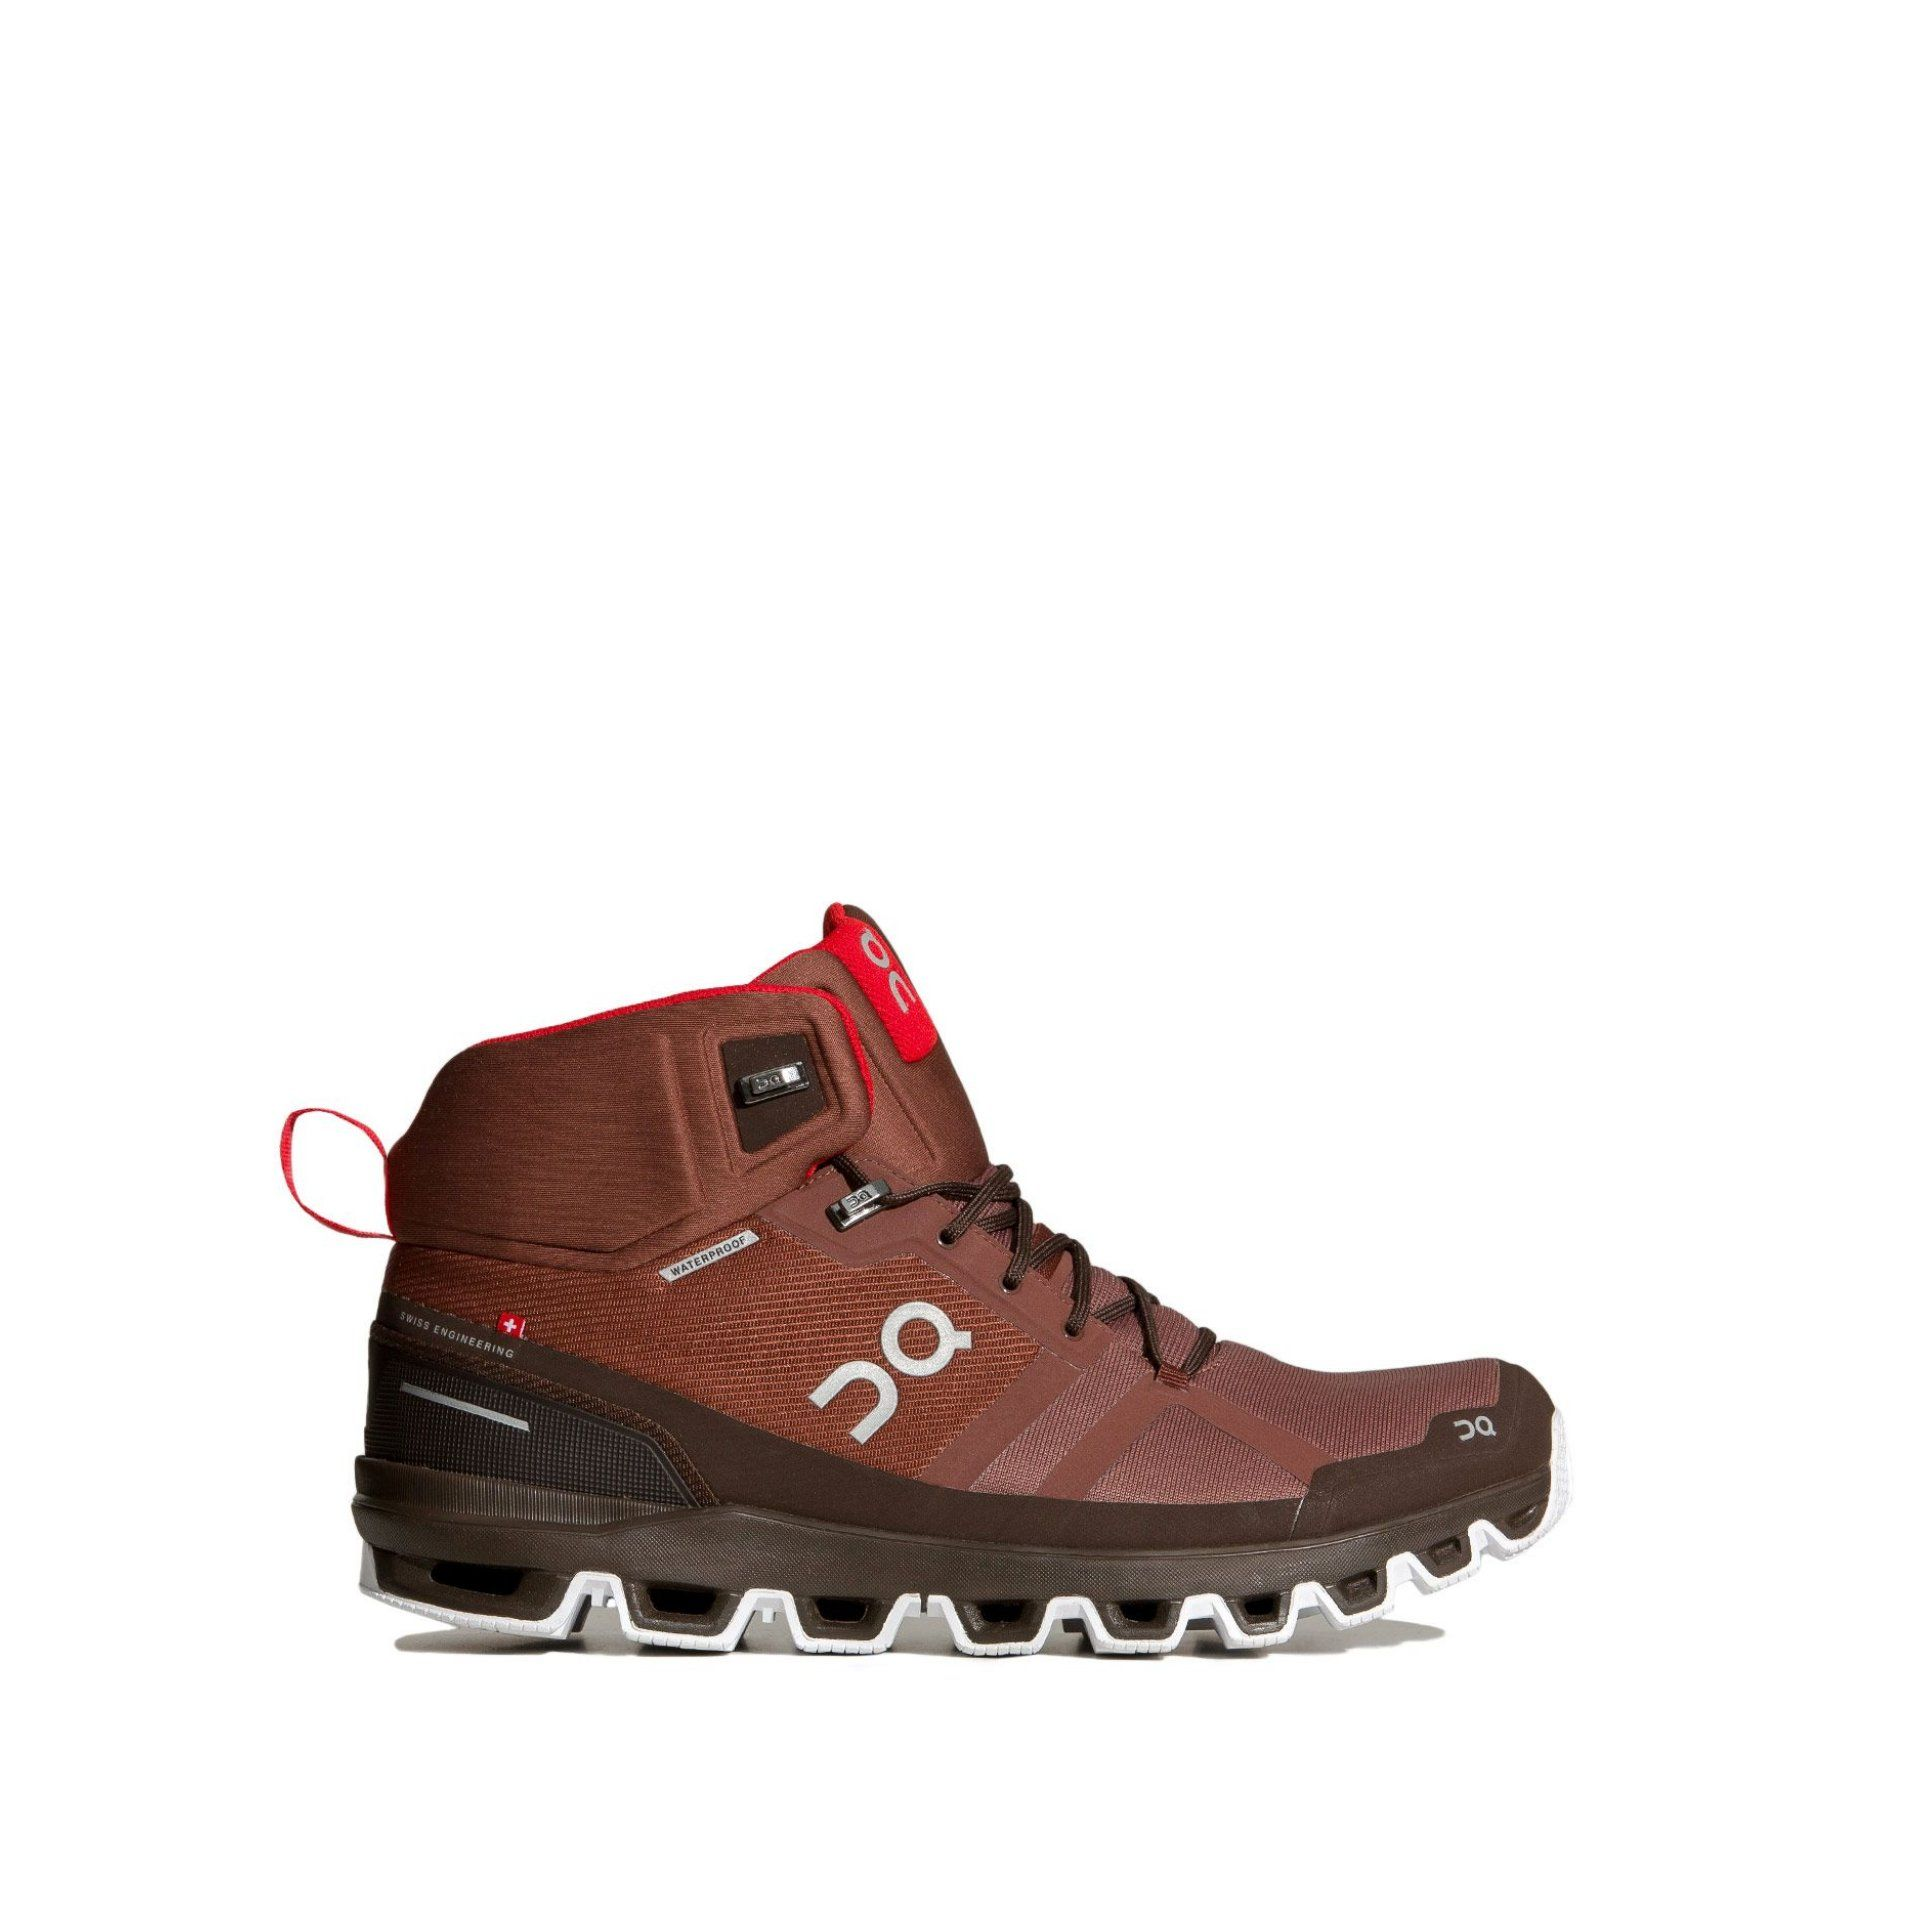 BUTY DO BIEGANIA ON RUNNING CLOUDROCK WATERPROOF M COCOA|RED 1